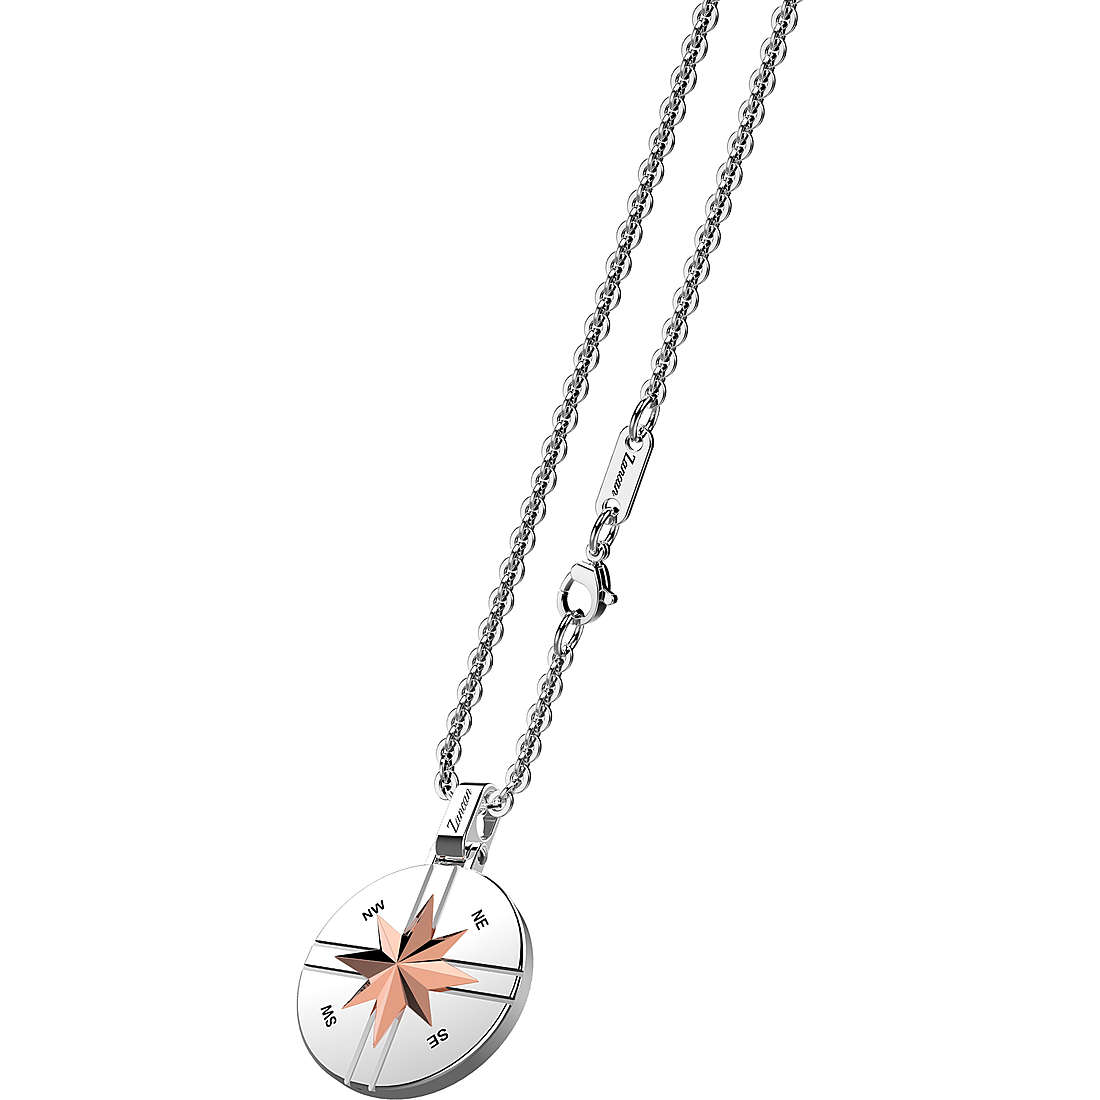 Zancan stainless steel Necklace with star pendant round EHC104